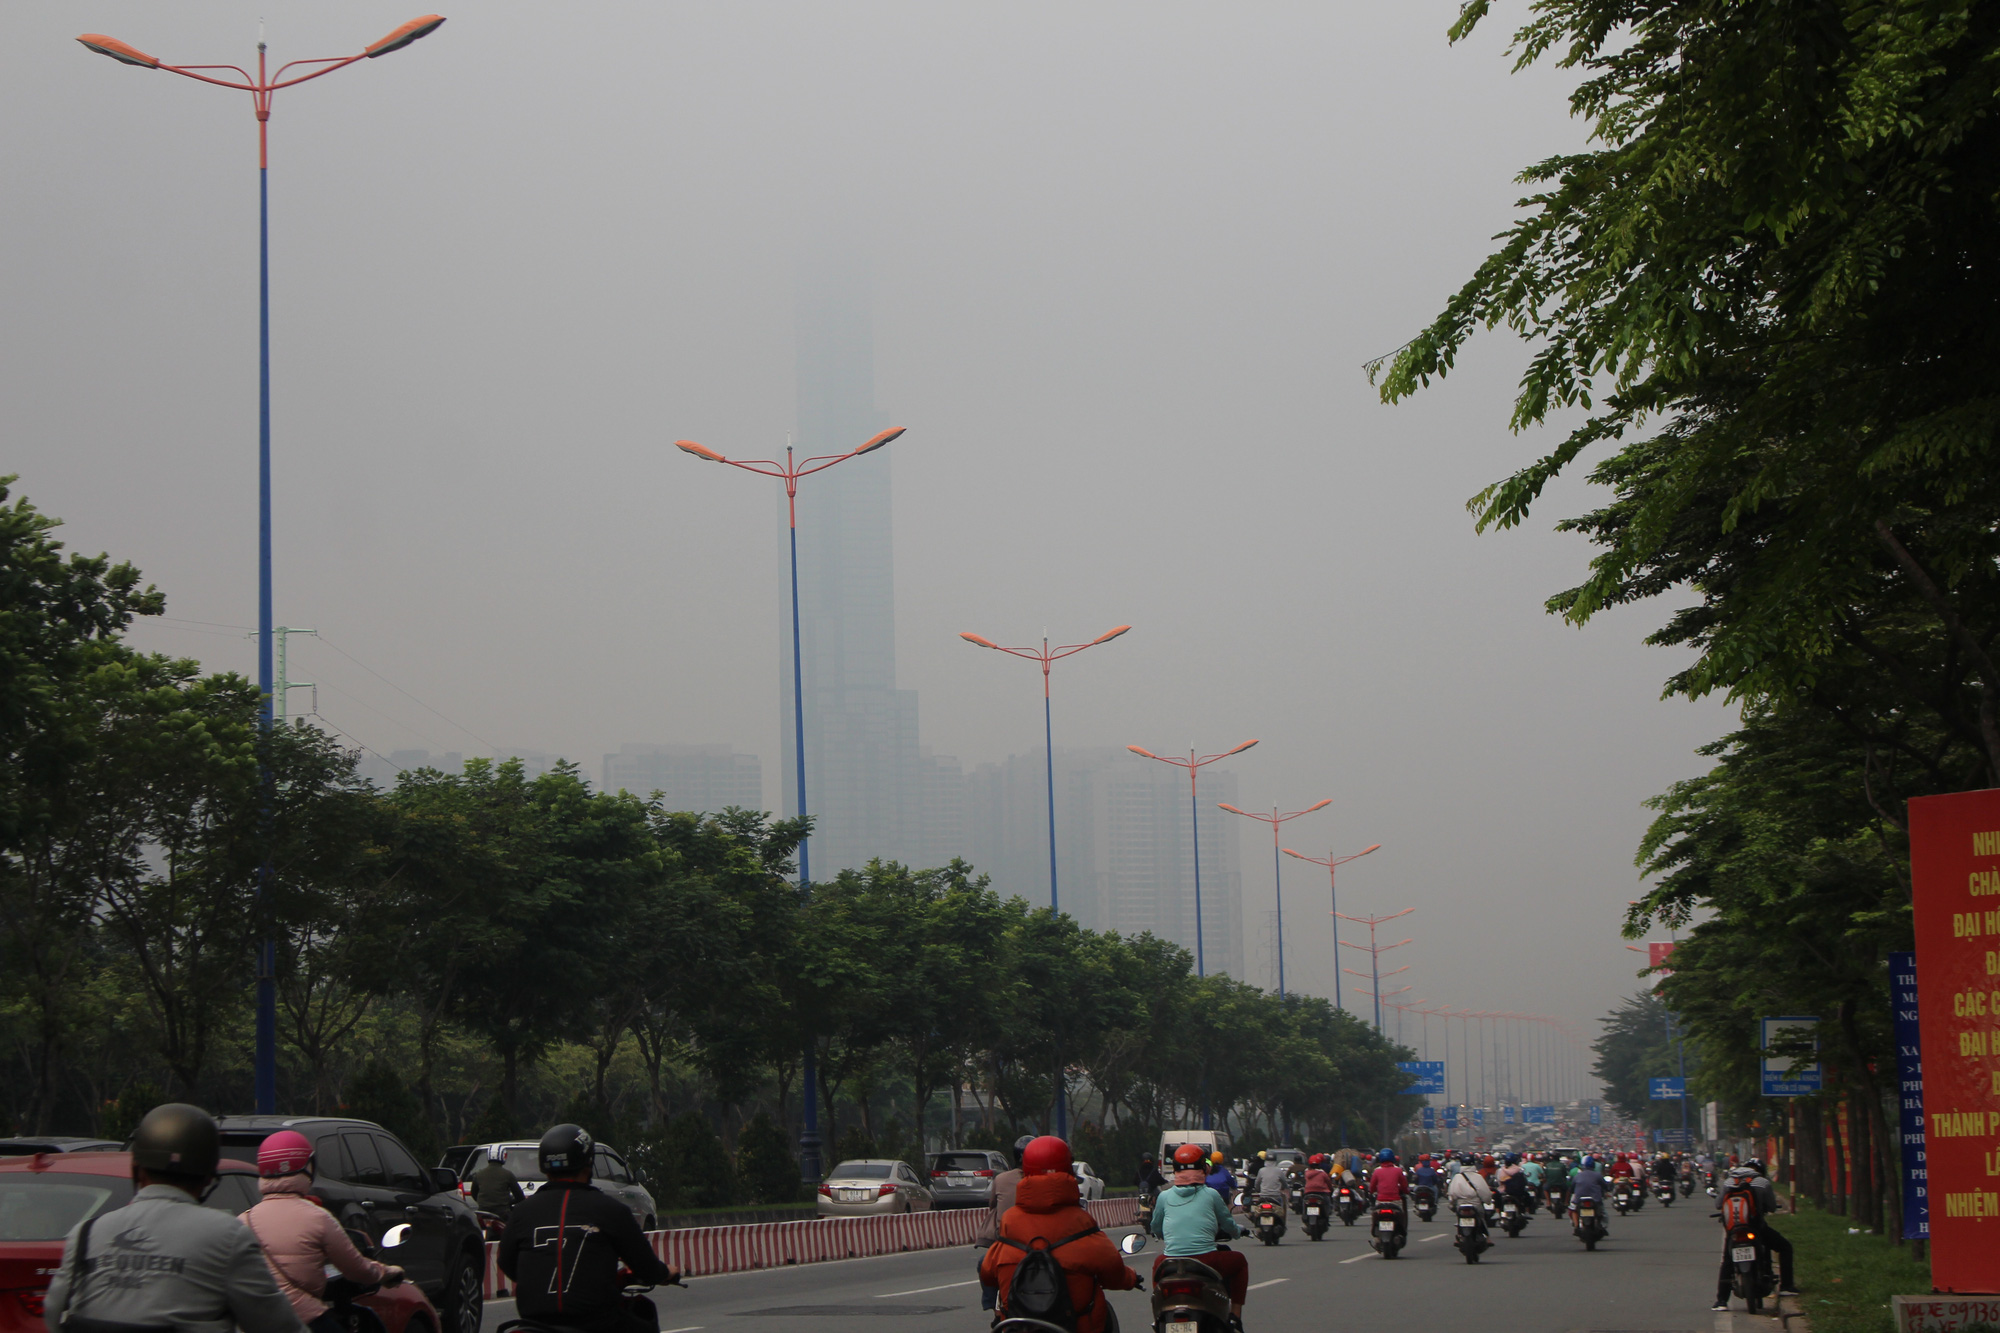 The Ho Chi Minh City skyline becomes obscure due to fog on the morning of December 24, 2020. Photo: Kim Ut / Tuoi Tre